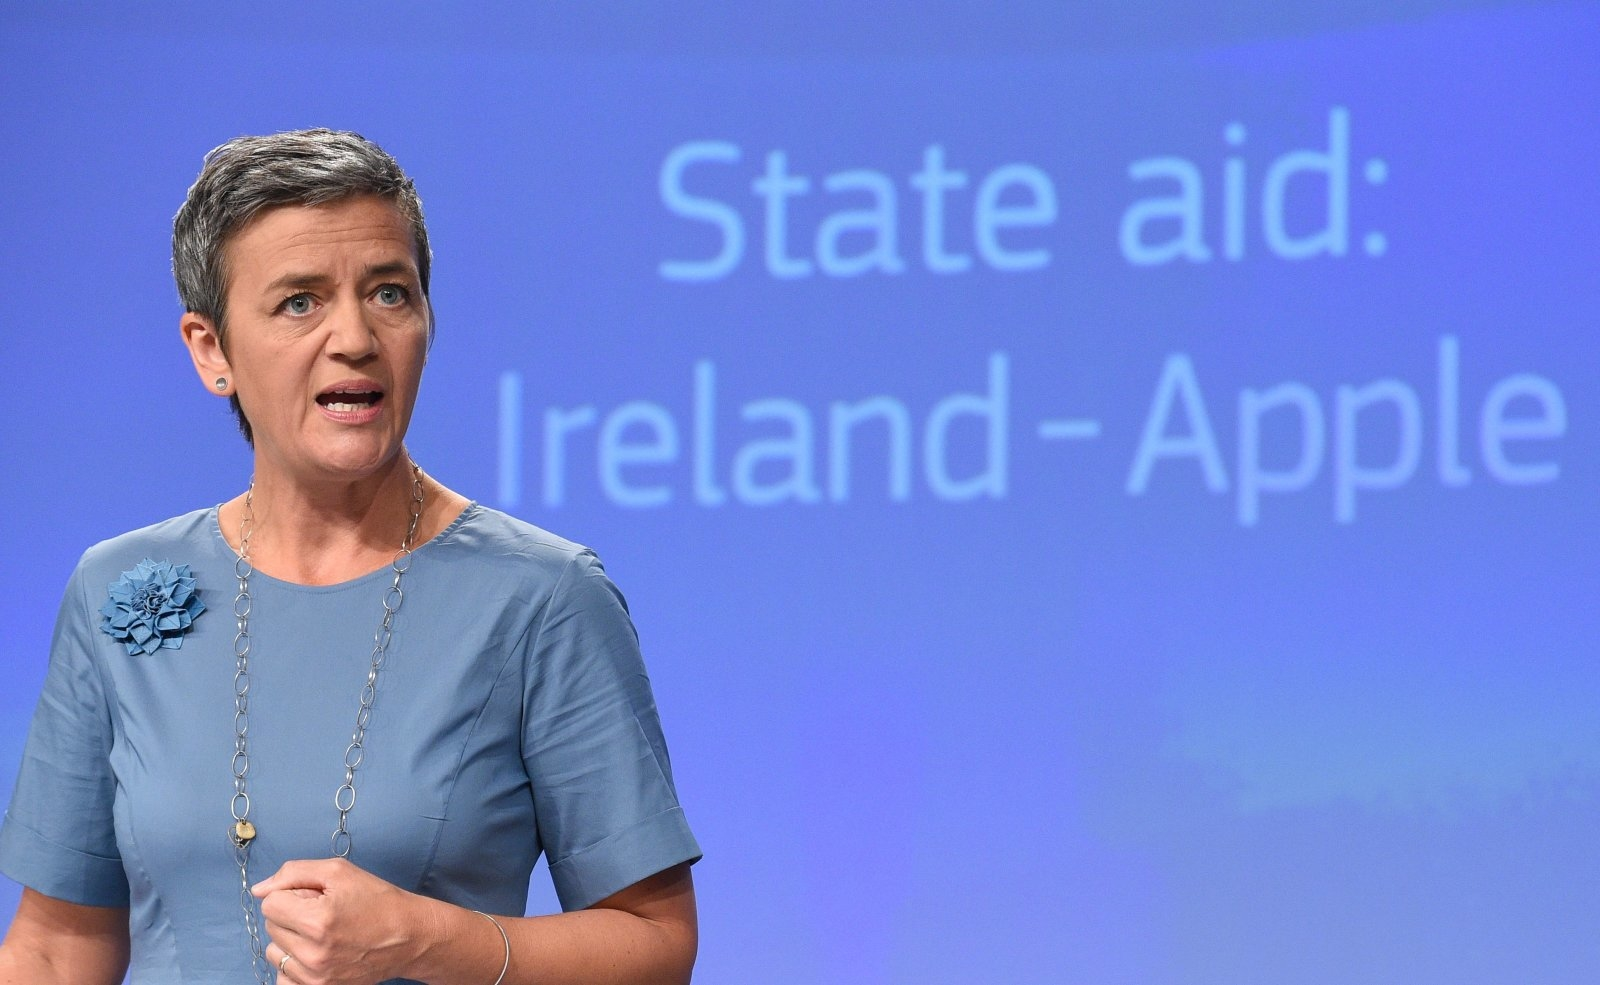 EU Competition Commissioner Margrethe Vestager talks as she gives a press conference to order Apple to pay 13 billion euros in back taxes, in Brussels on August 30, 2016.  The European Union on August 30, 2016, ordered Apple to pay a record 13 billion euros in back taxes in Ireland, saying deals allowing the US tech giant to pay almost no tax were illegal. Apple and the Irish government immediately said they would appeal against the European Commission ruling, while the US Treasury said it could undermine its economic partnership with the EU. Ireland has been seeking to attract multinationals by offering extremely favourable tax conditions, known as sweetheart deals, but EU Competition Commissioner Margrethe Vestager said Apple's broke EU laws on state aid.  / AFP / John THYS        (Photo credit should read JOHN THYS/AFP/Getty Images)